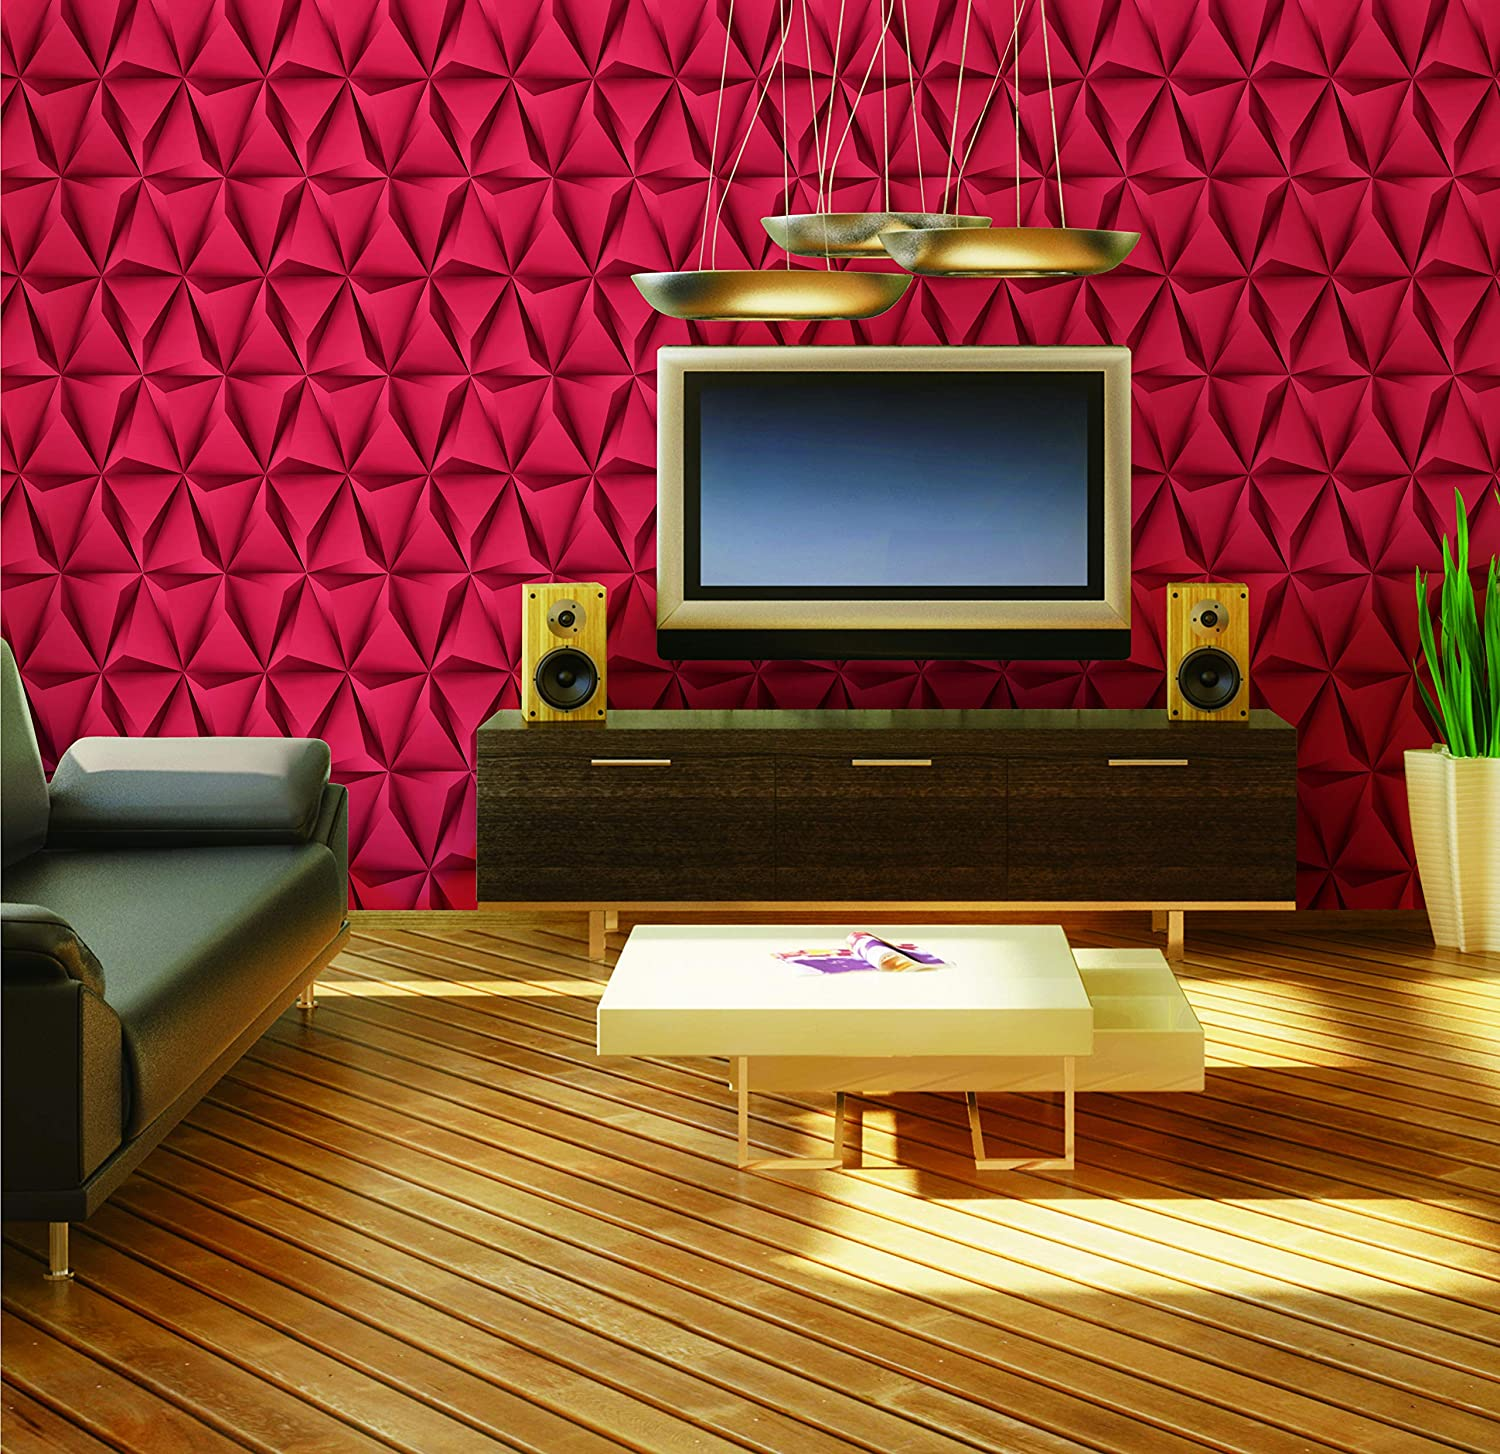 on sale 9b1f6 e133b Buy Eurotex 3D Red Prism Designer PVC Wallpaper for Bedroom   Living Room,  1 roll 57 sq ft (53 x 1000cm) Online at Low Prices in India - Amazon.in